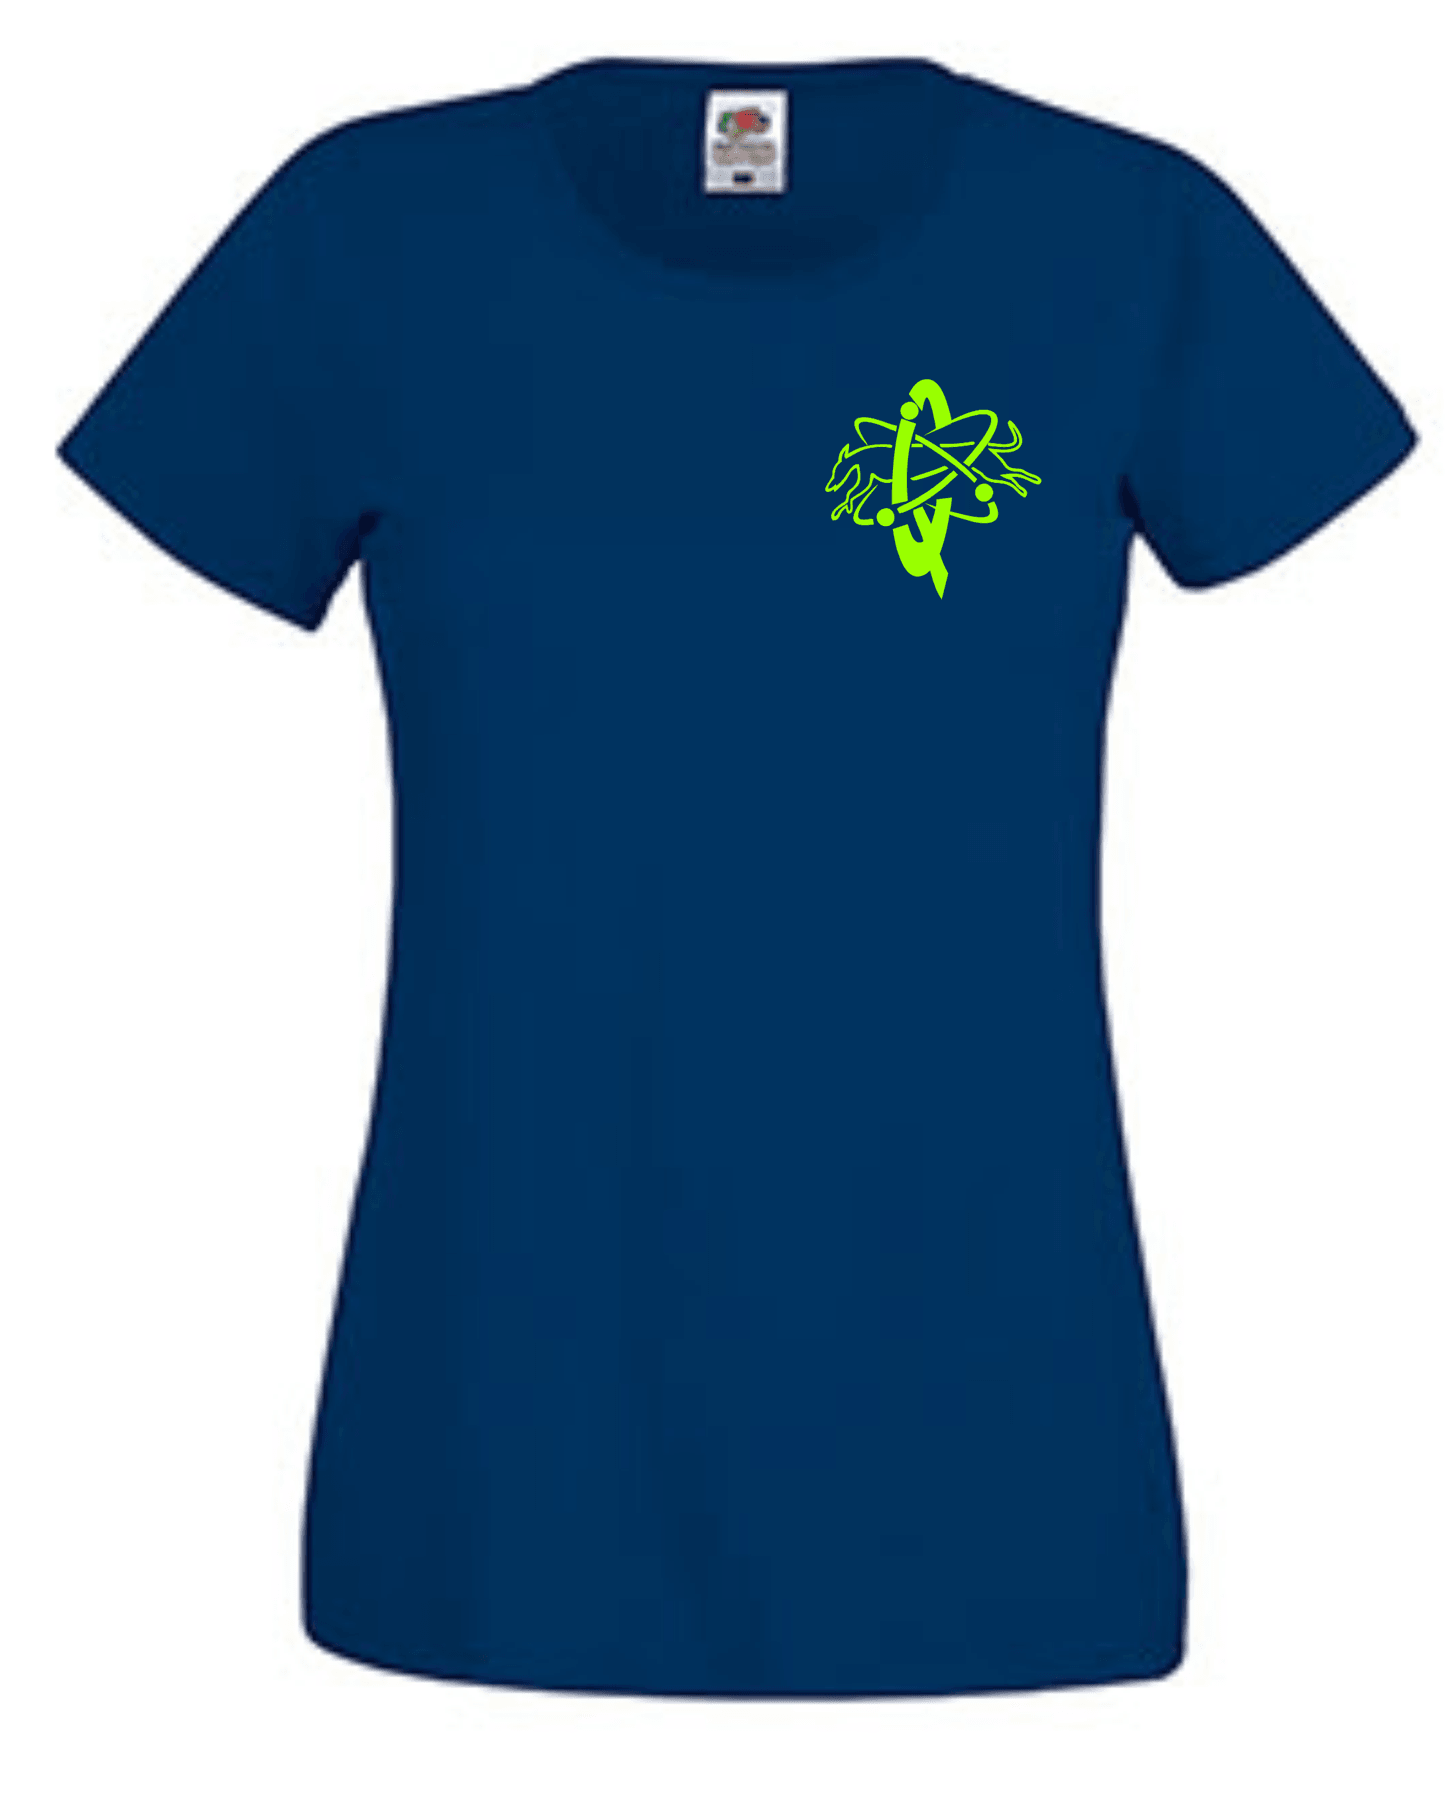 Quantum Leap Flyball – T-shirt Ladyfit